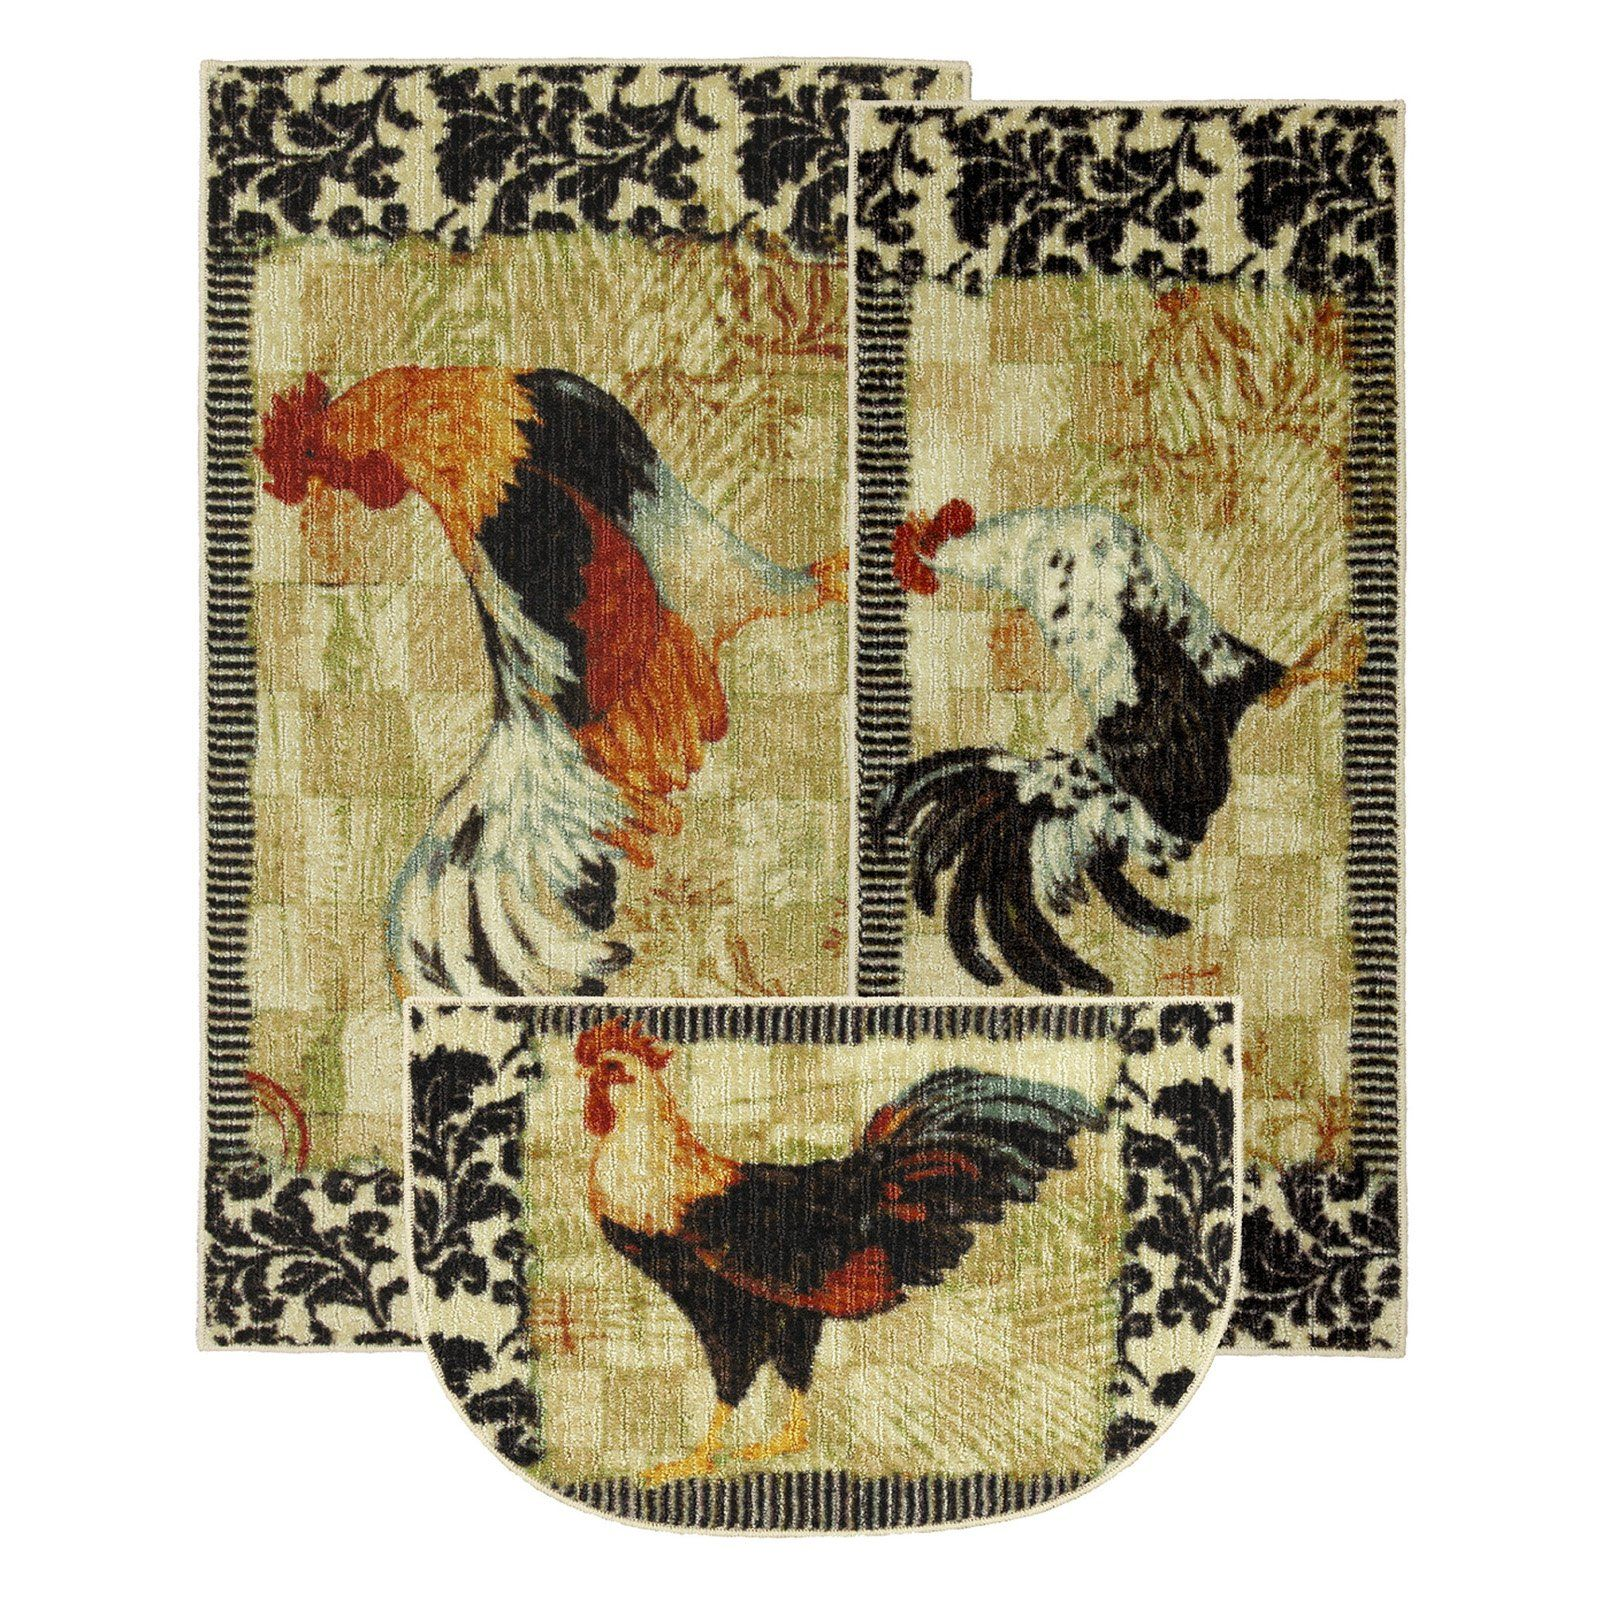 Mohawk New Wave Kitchen Bergerac Rooster Rug $29